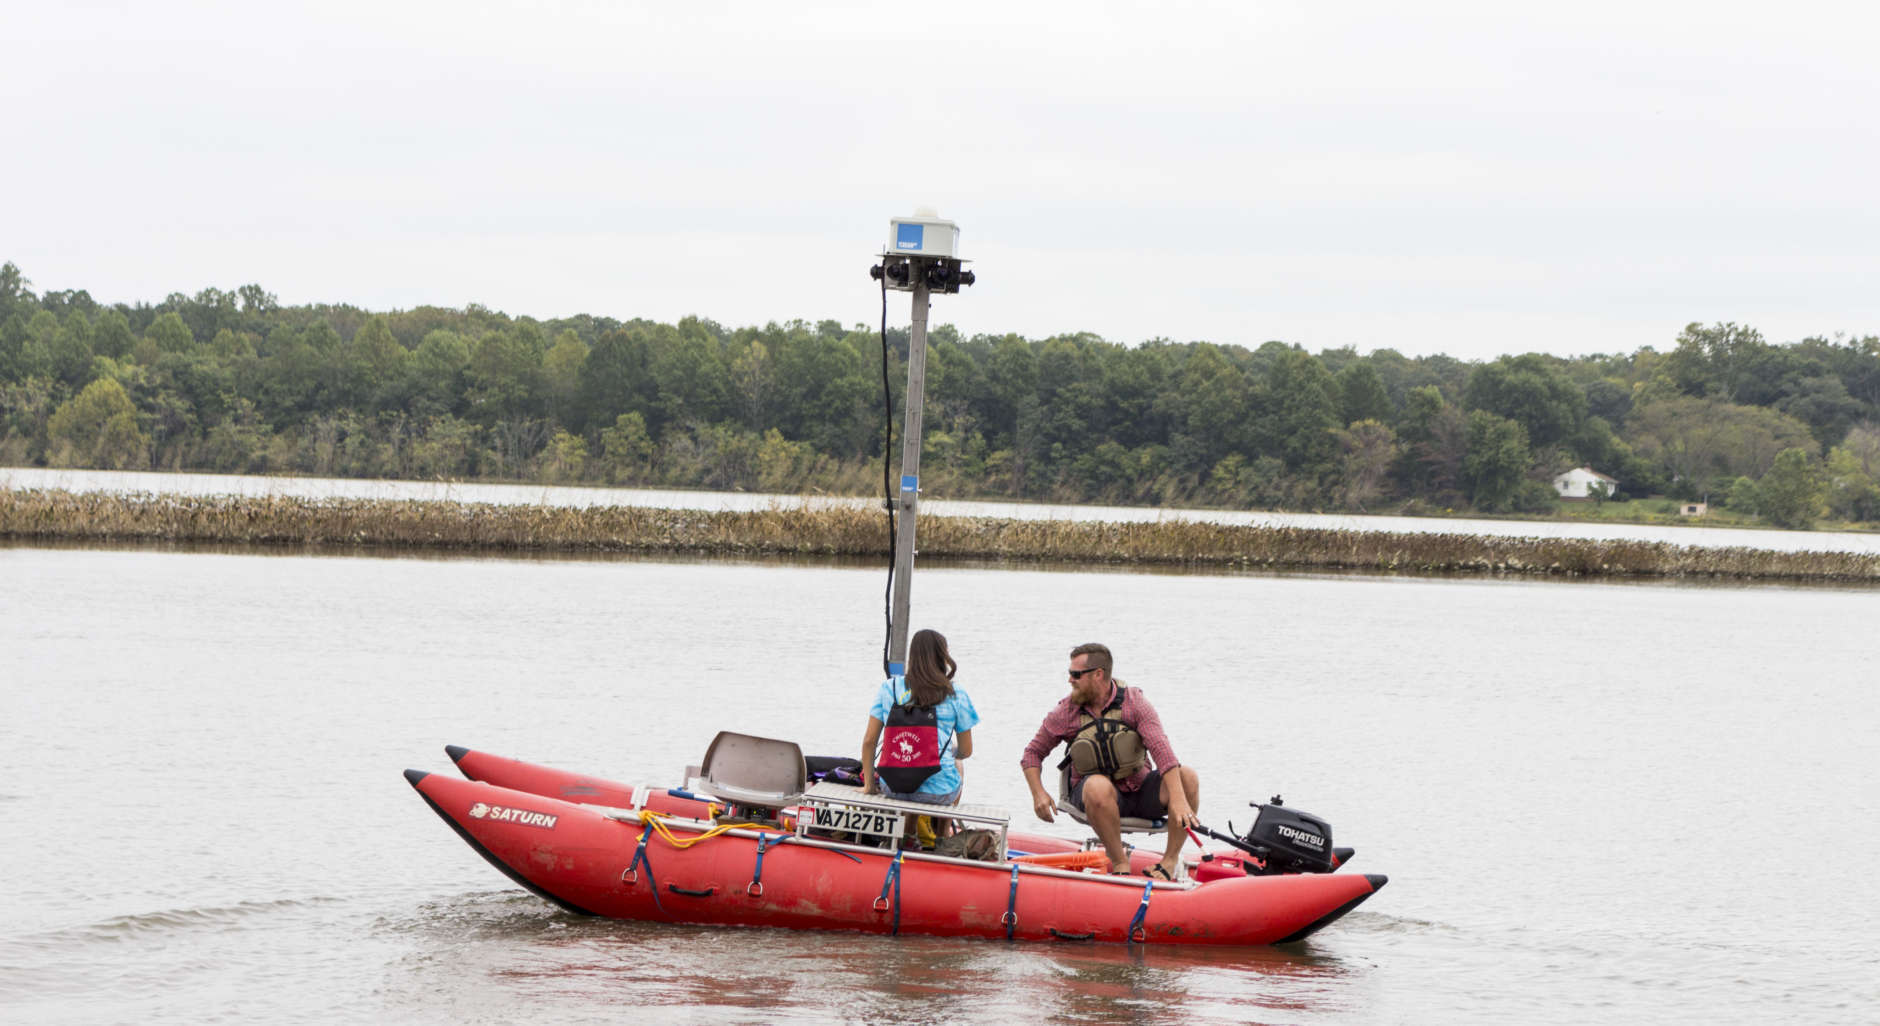 Terrain 360 founder Ryan Abrahamsen takes a reporter on his mapping boat, Tuesday Sept. 26, 2017, in Upper Marlboro, Maryland. Abrahamsen is mapping the Patuxent River in partnership with the Chesapeake Conservancy to create virtual river tours. (Alex Mann/Capital News Service)